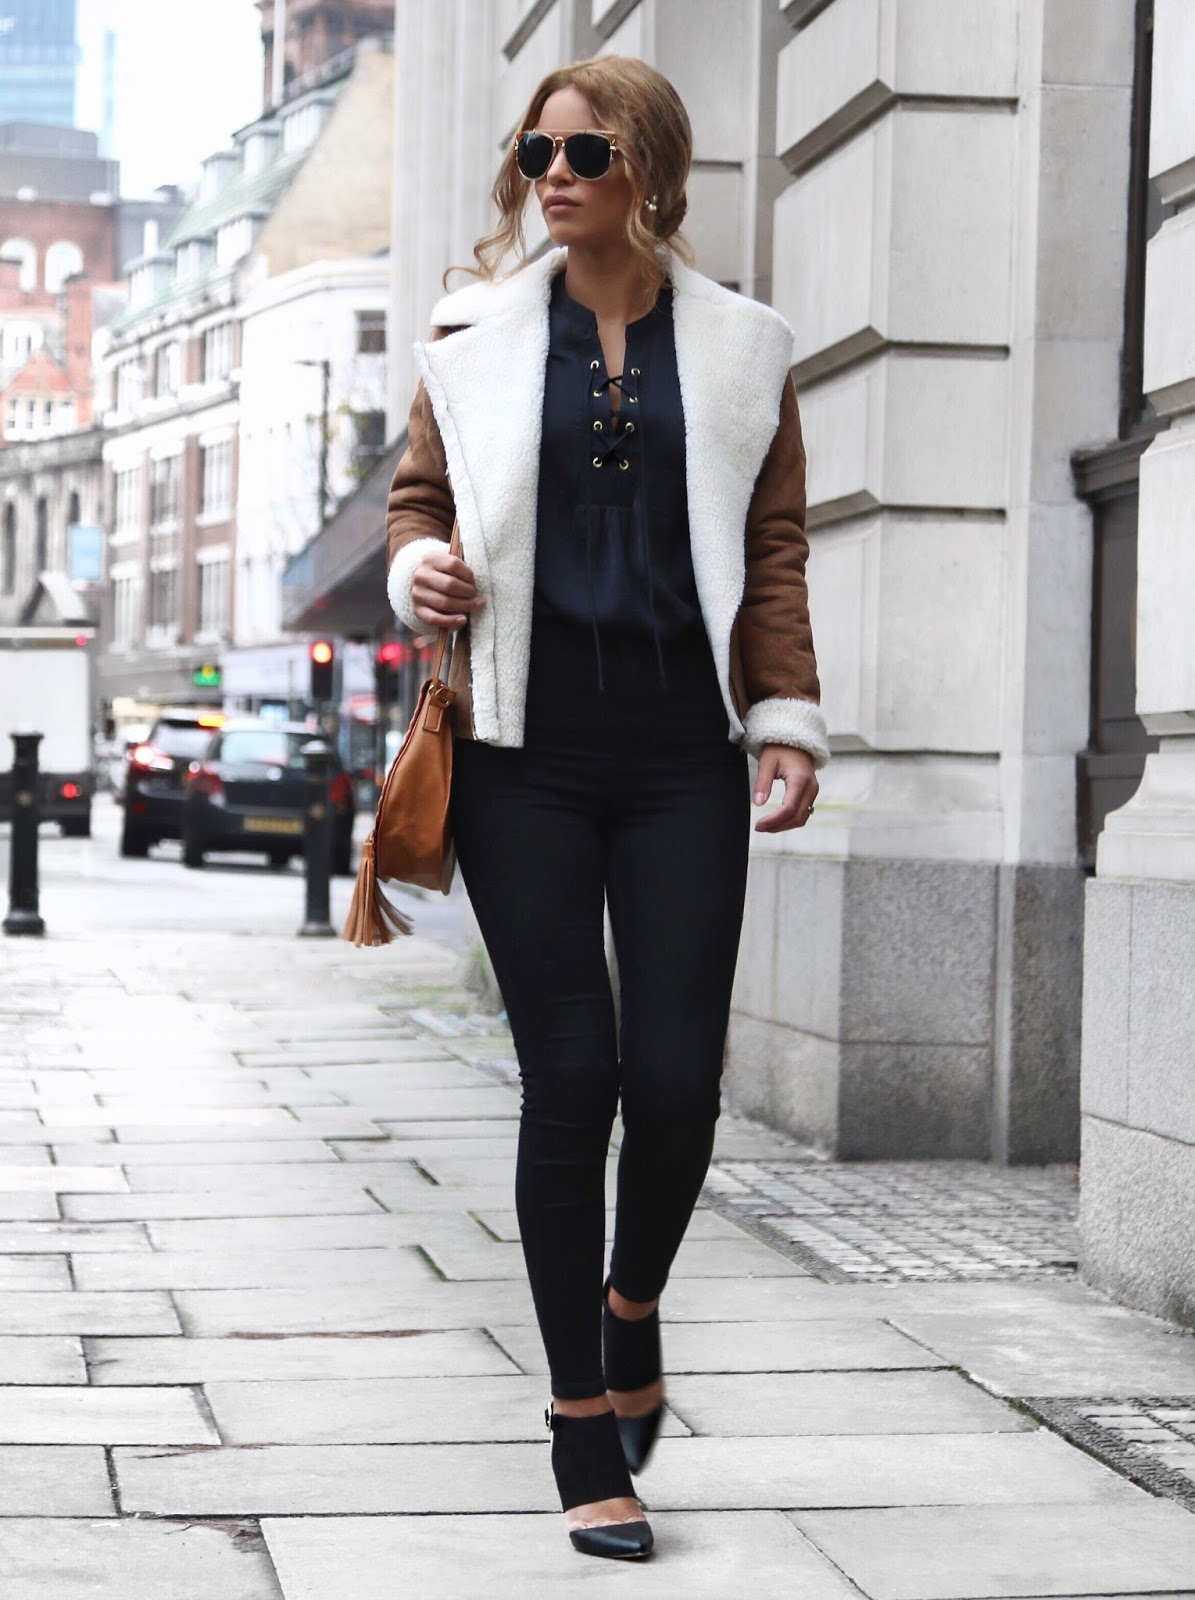 Nada Adelle wears the lace up trend on a gorgeous navy blouse, matched perfectly with a leather shearling coat and high waisted black denim jeans. Biker Jacket/Shoes: Dorothy Perkins, Jeans: Topshop.